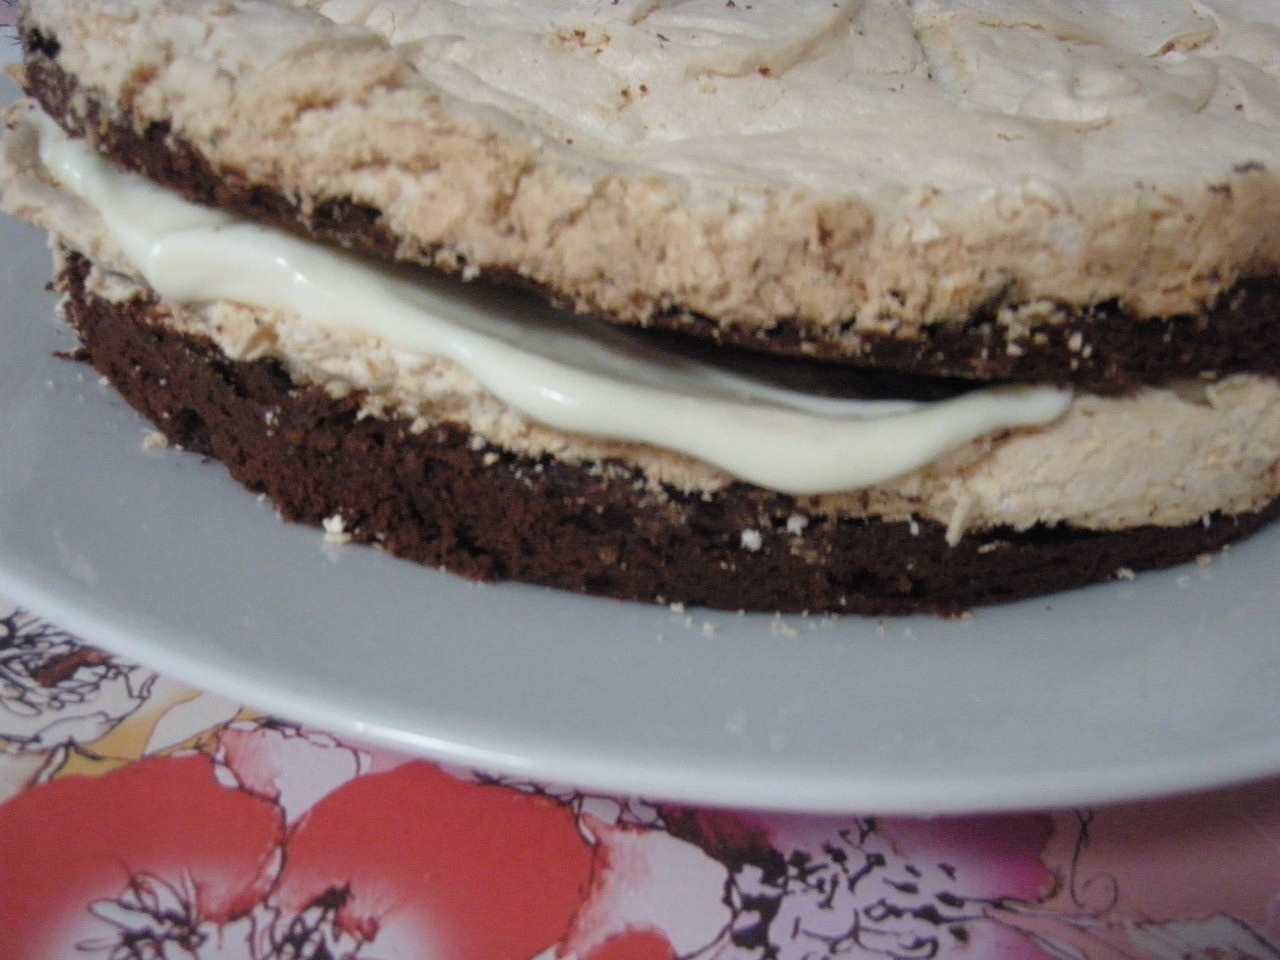 Edinburgh Eats: Baking Sunday: Chocolate Meringue cake and ...